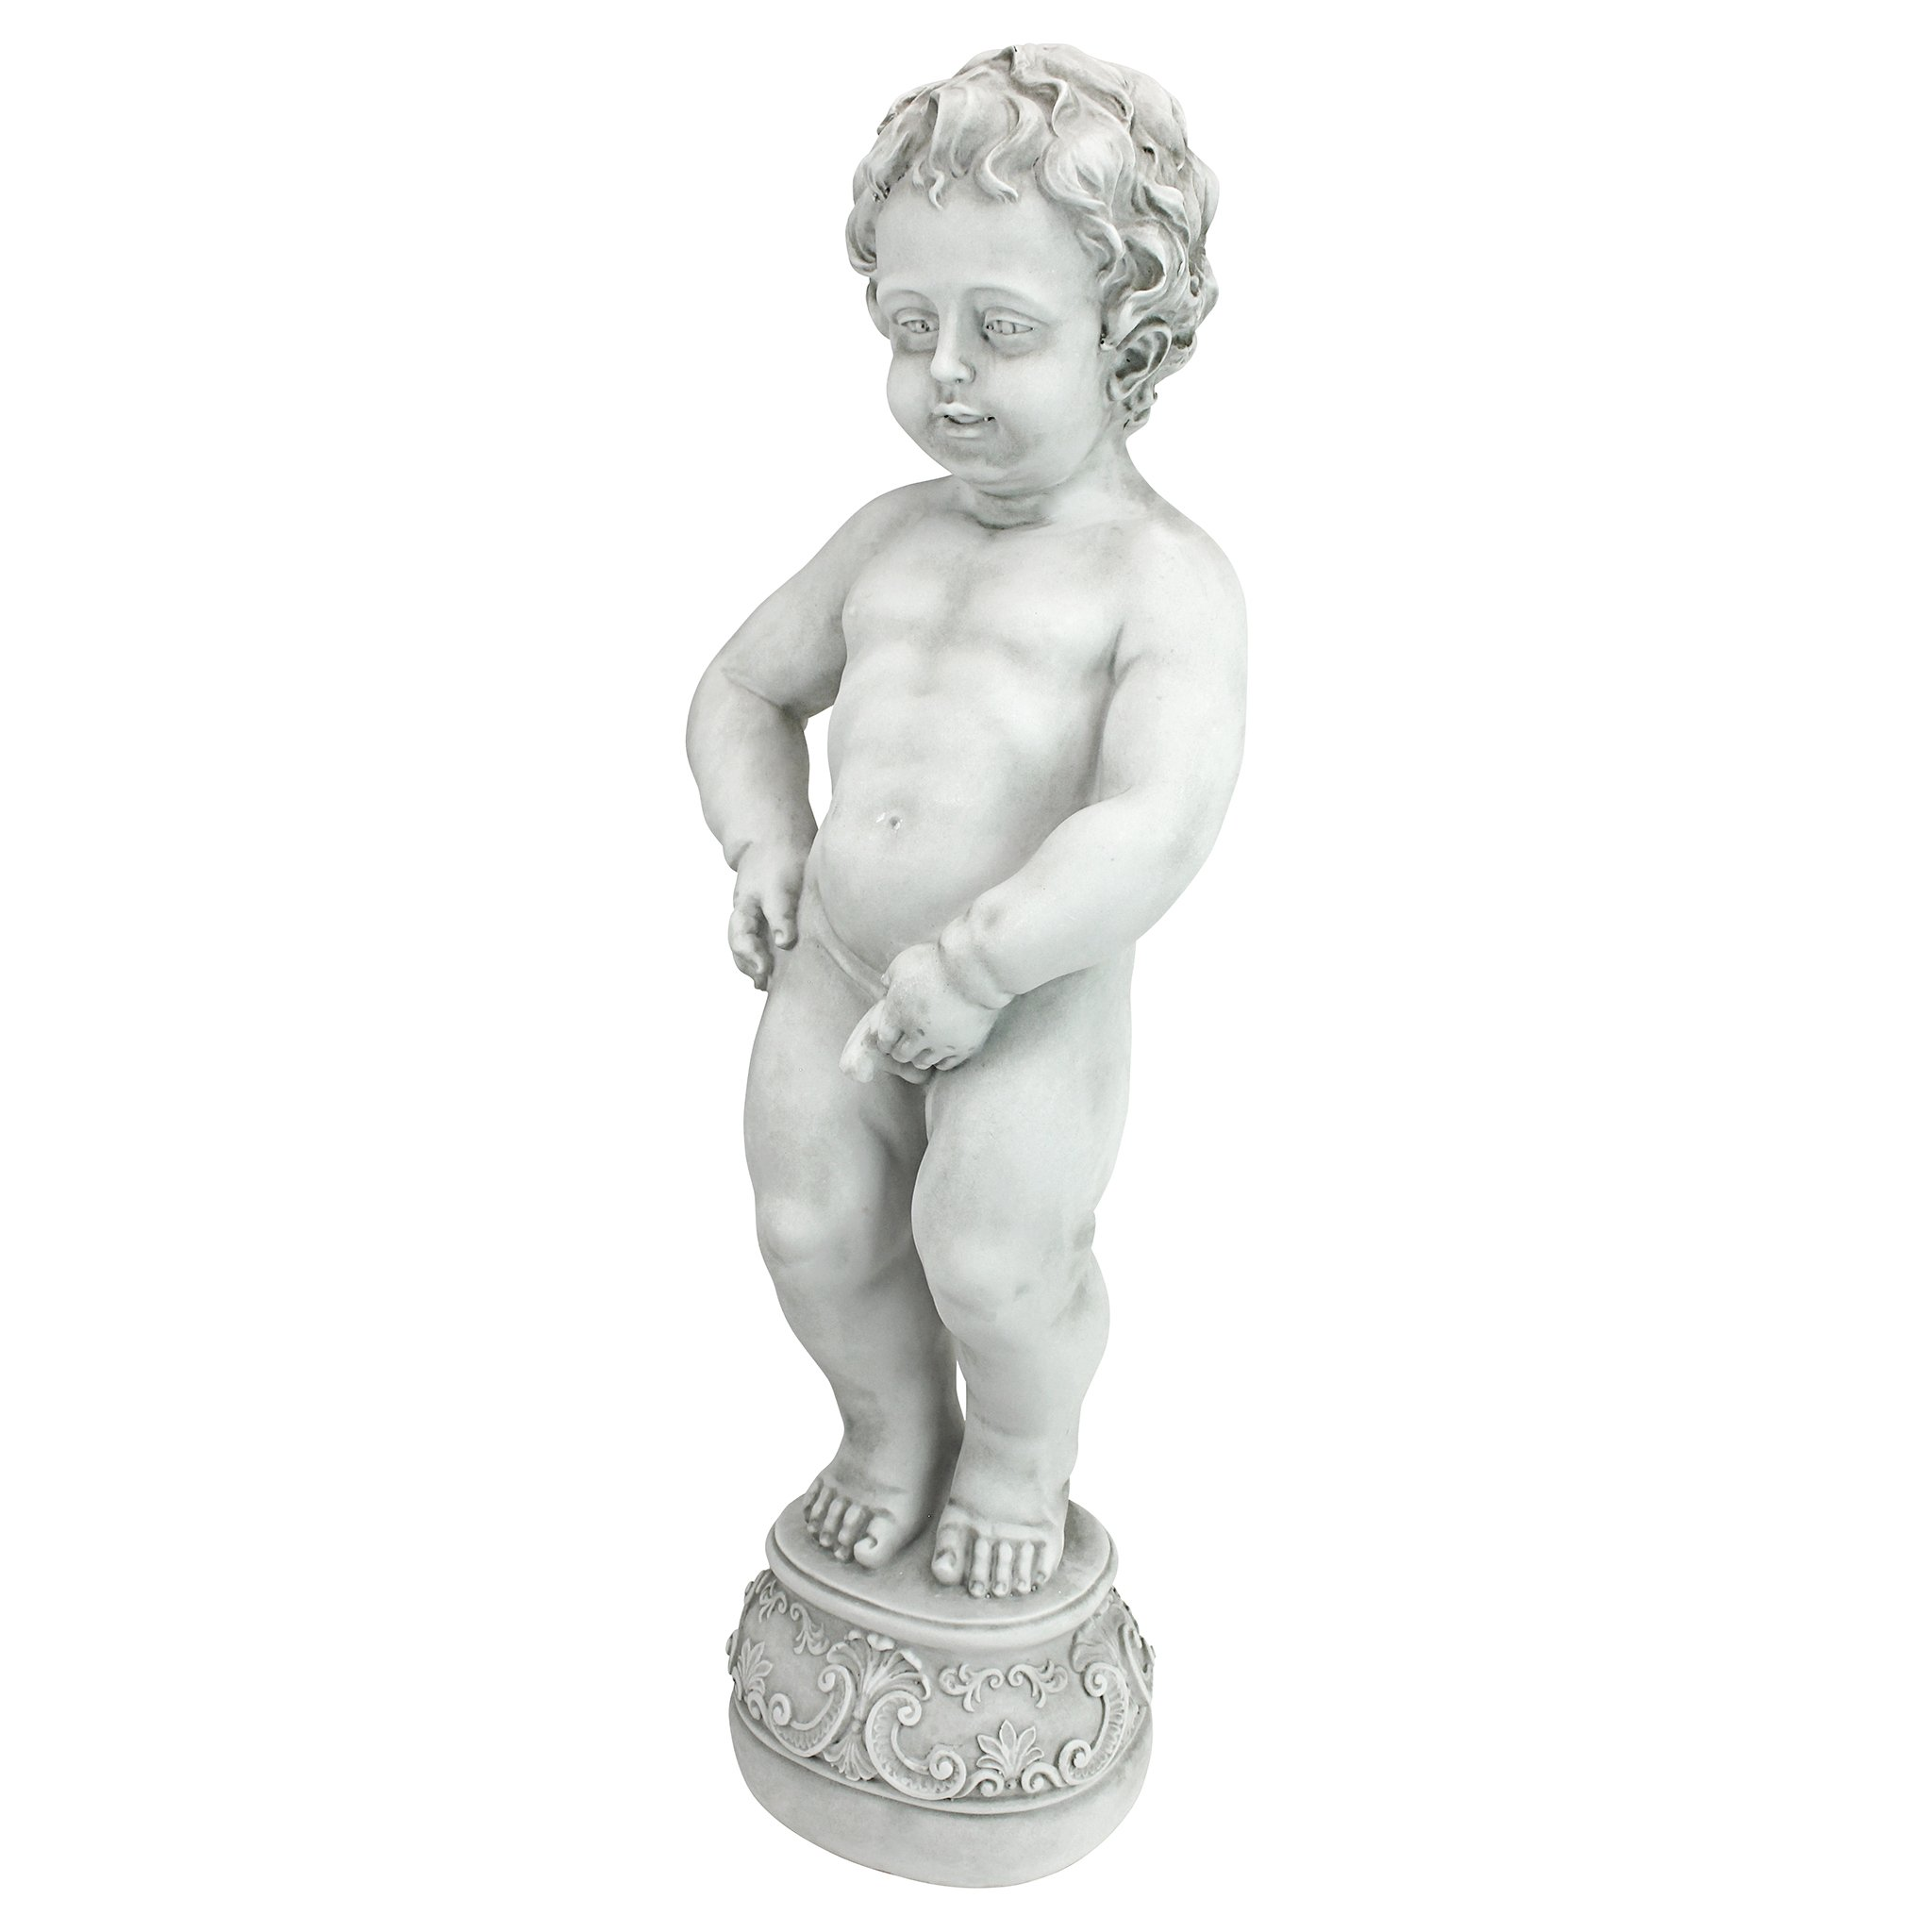 Design Toscano Manneken Pis Peeing Boy Piped Pond Spitter Statue Water Feature, 27 Inch, Polyresin, Antique Stone